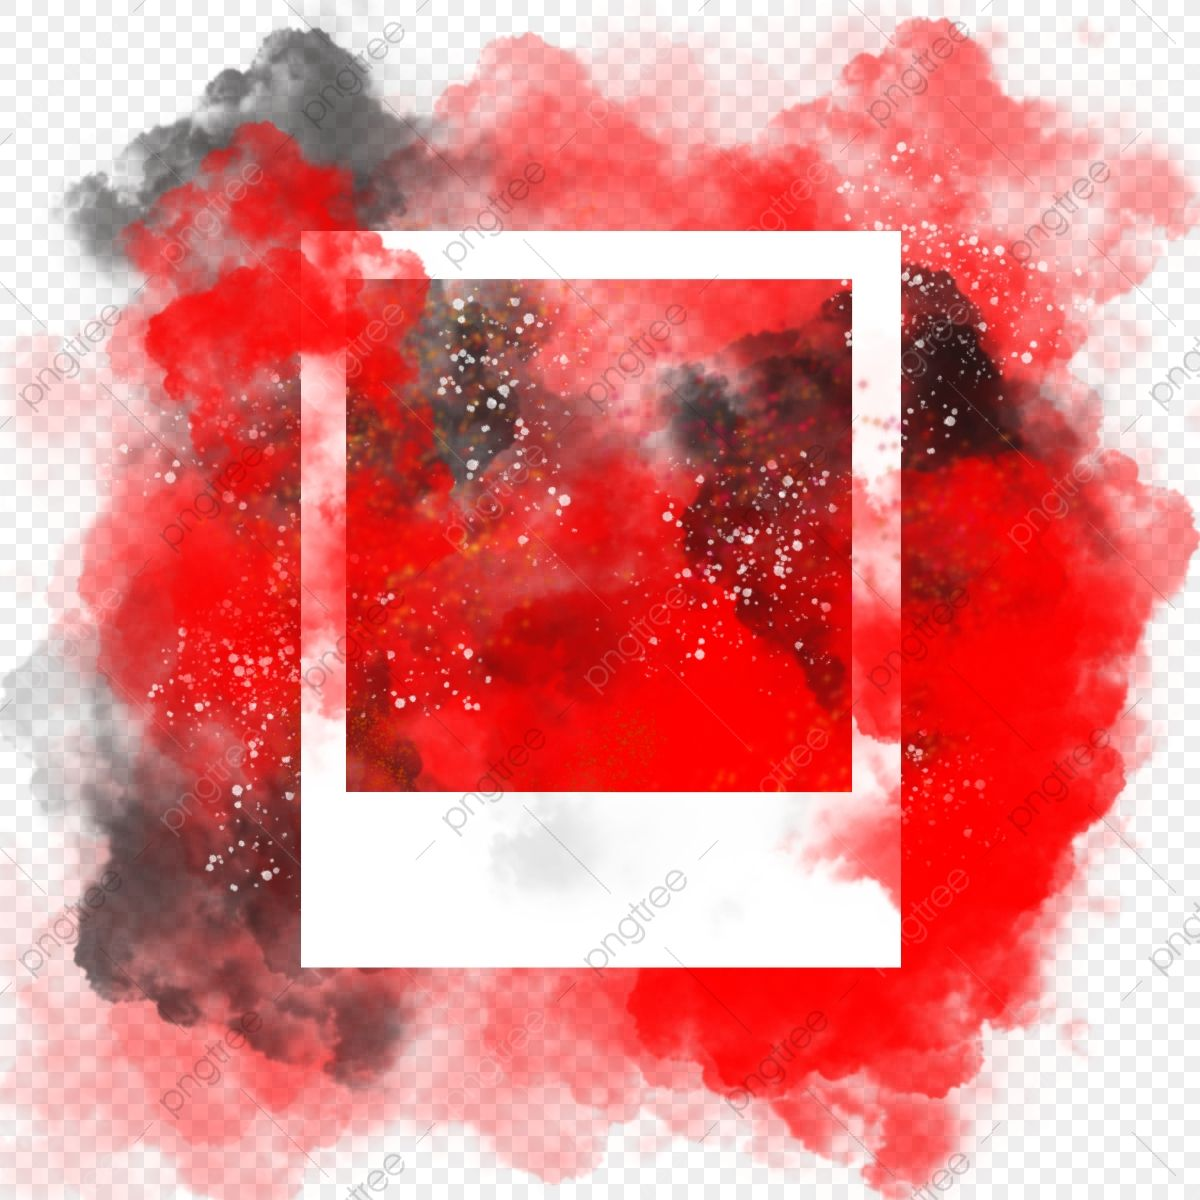 super cool red black smoke effect red smoke black effect red png transparent clipart image and psd file for free download in 2020 red and black background red smoke black and red smoke effect red smoke